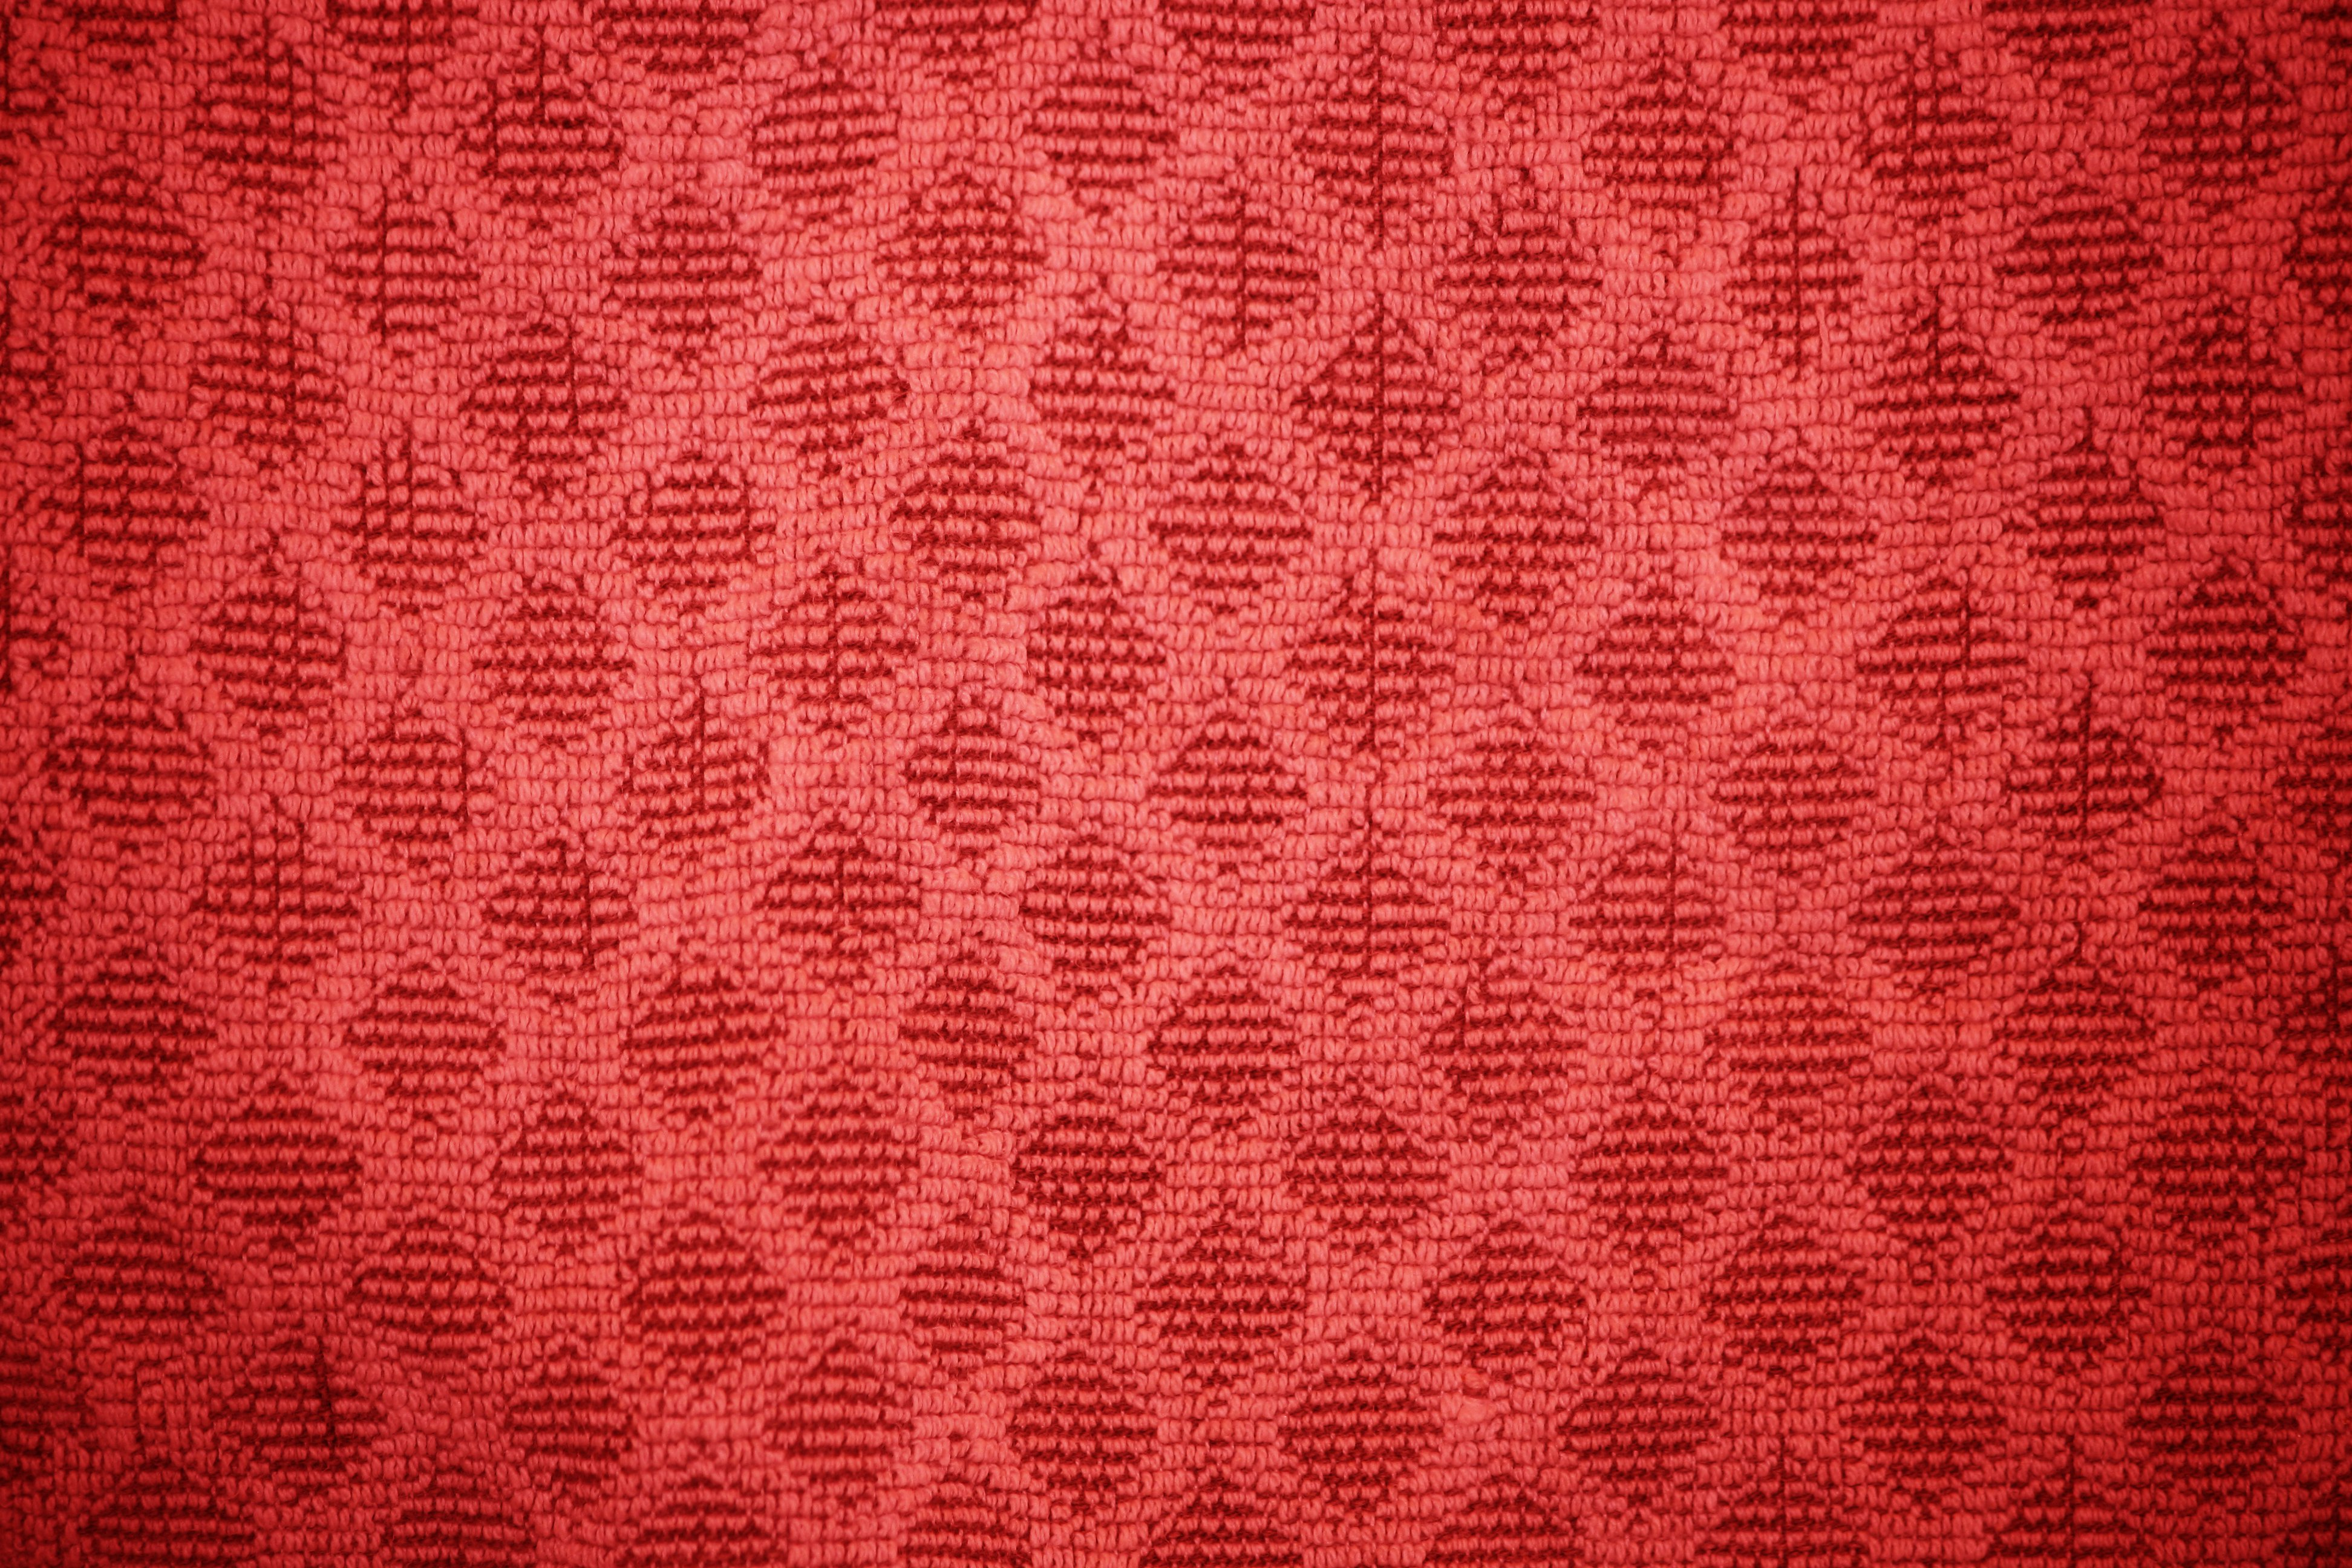 Red Dish Towel With Diamond Pattern Texture Picture Free